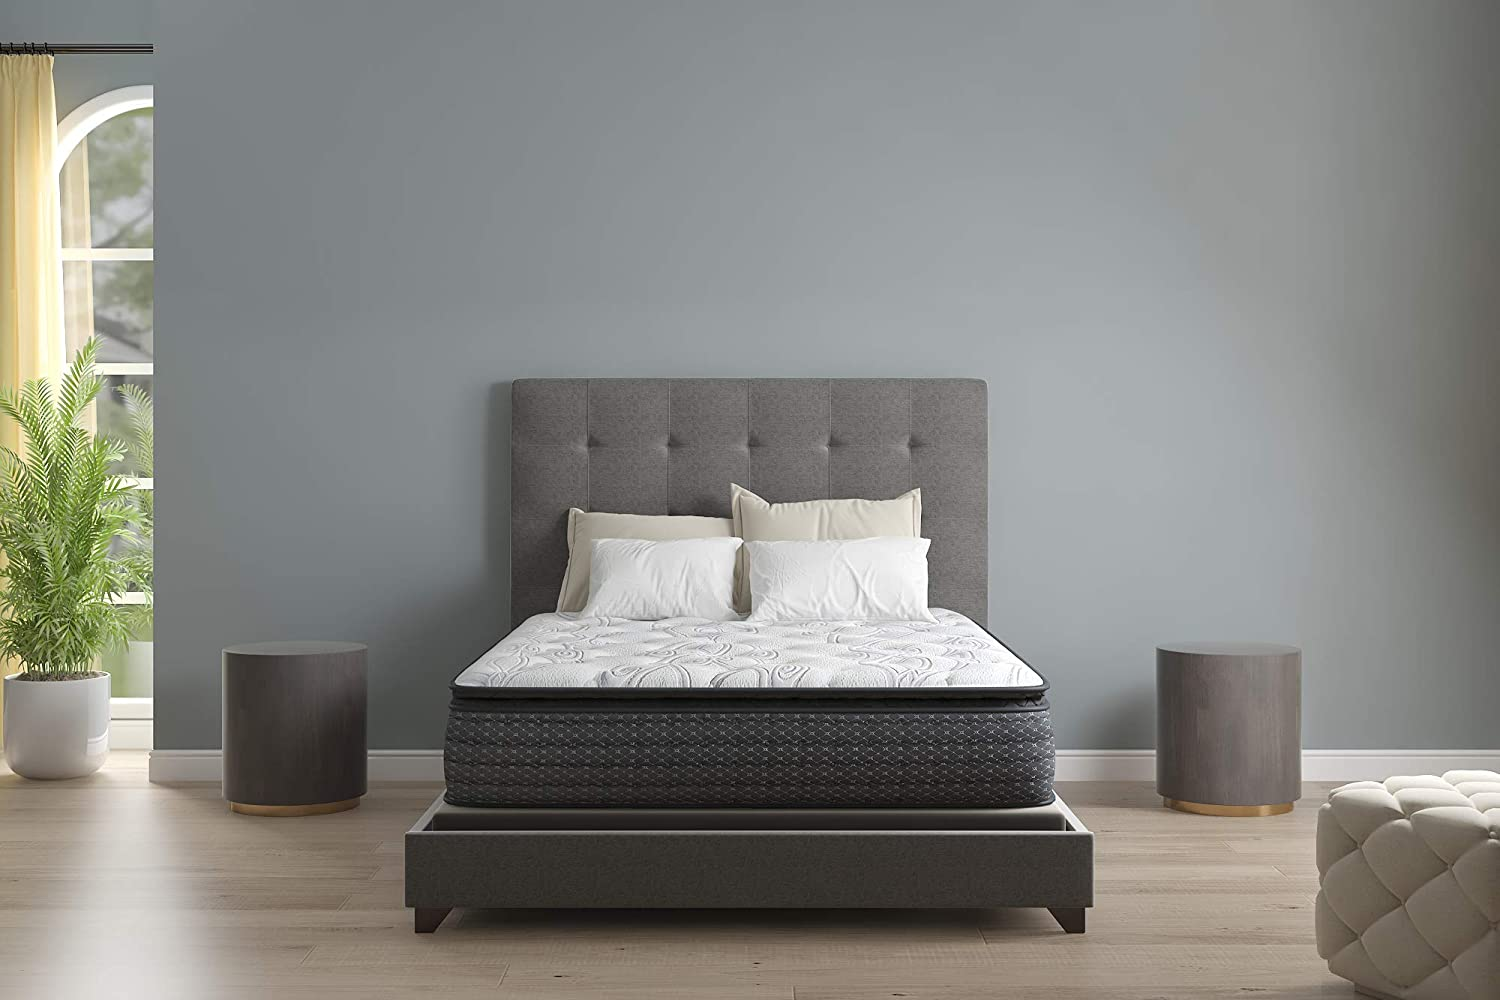 Signature Design by Ashley Limited Edition Pillowtop Queen Mattress, White